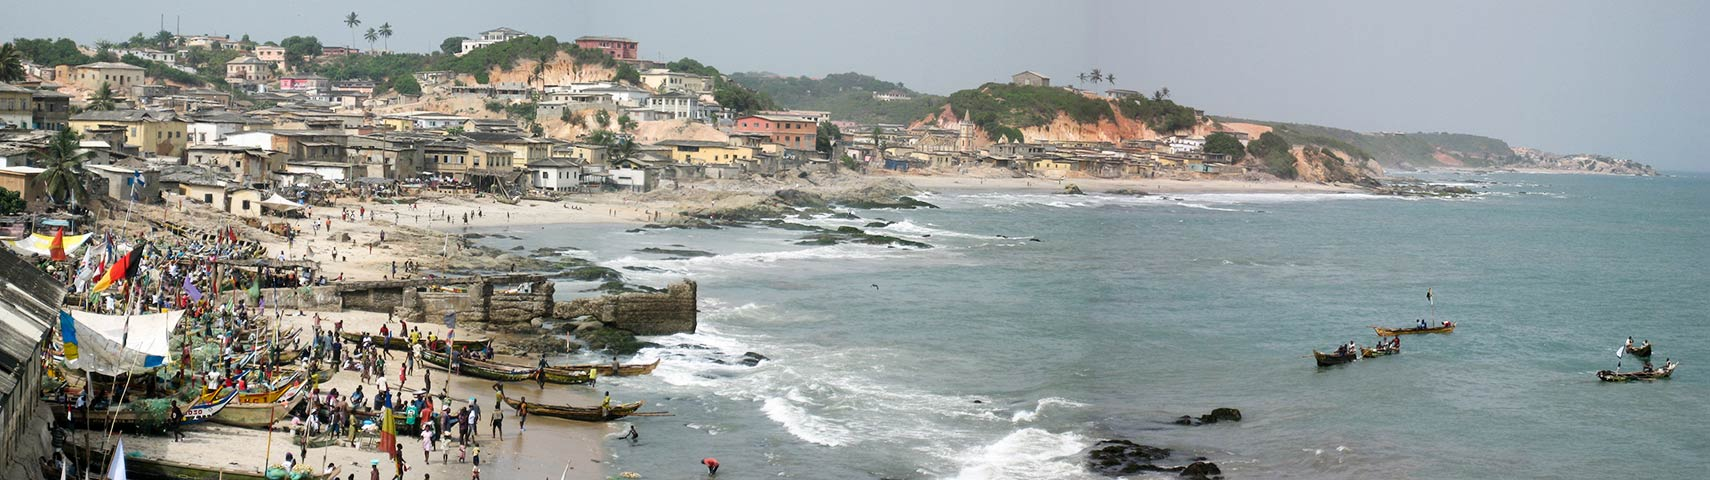 Coast at Cape Coast city, Ghana